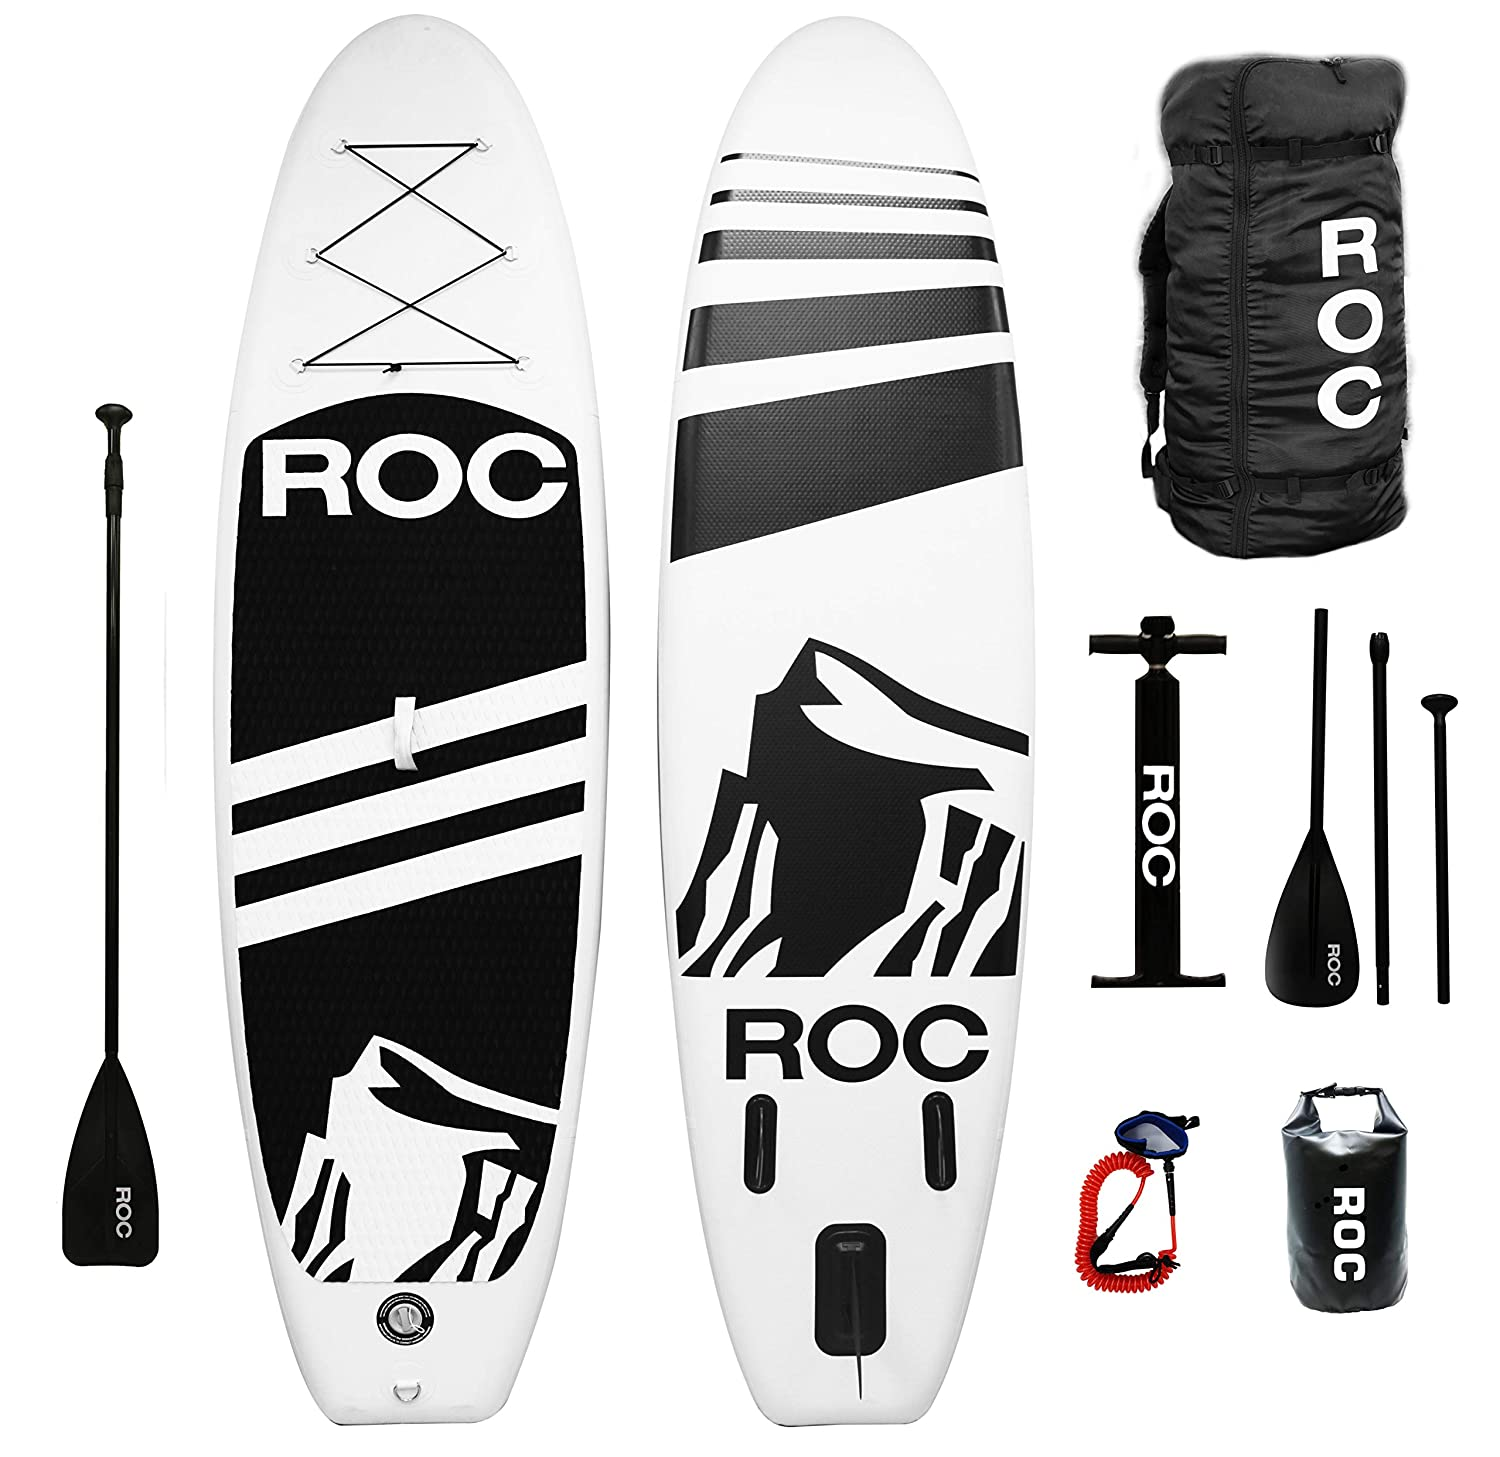 Roc Inflatable Stand Up Paddle Board W Free Premium SUP Accessories Backpack { Non Slip Deck } Bonus Waterproof Bag Leash Paddle and Hand Pump Youth Adult